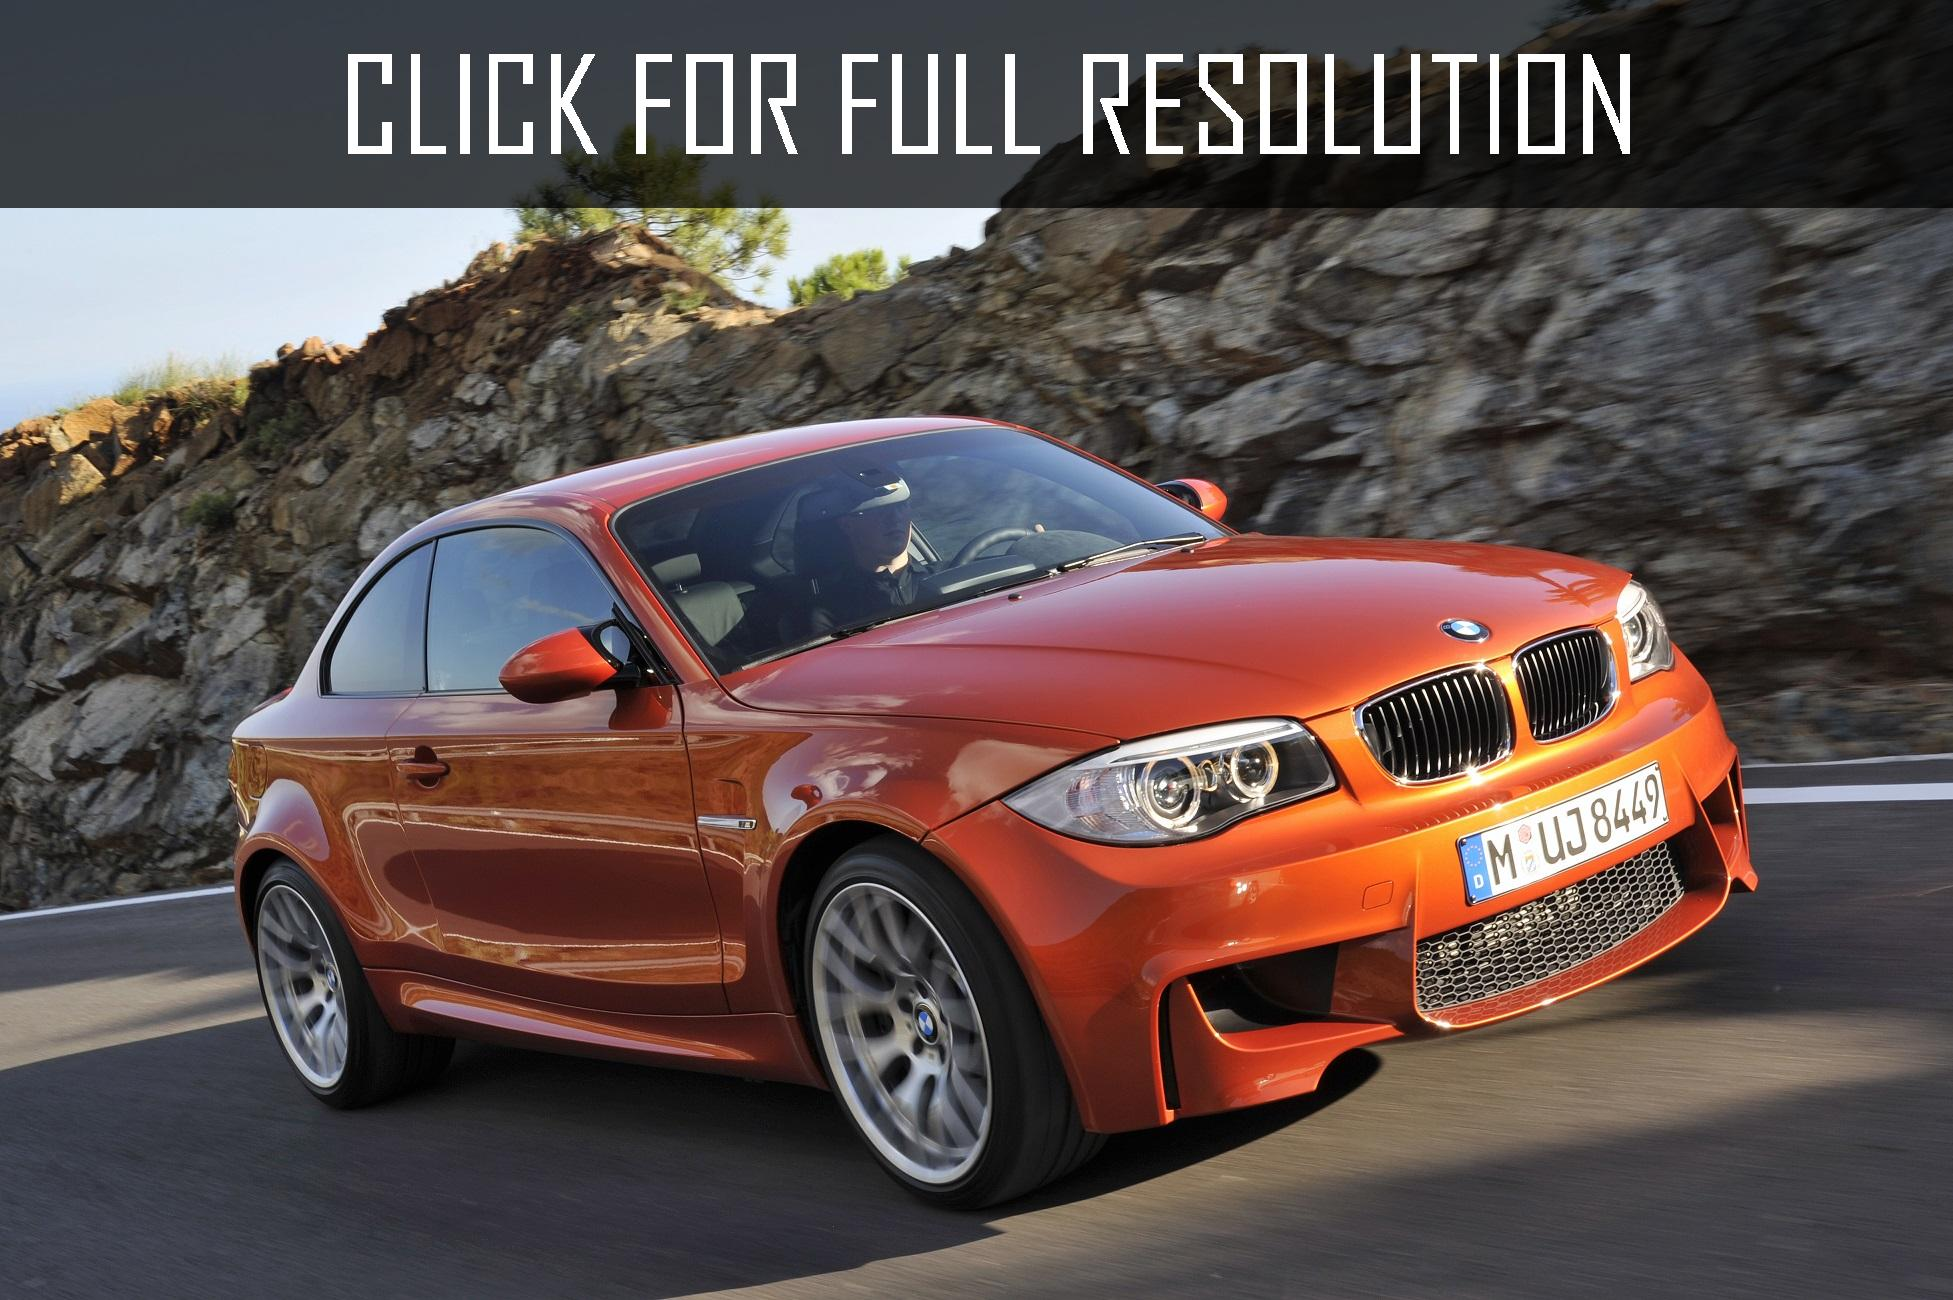 BMW 1 series 135is 2011 photo - 2